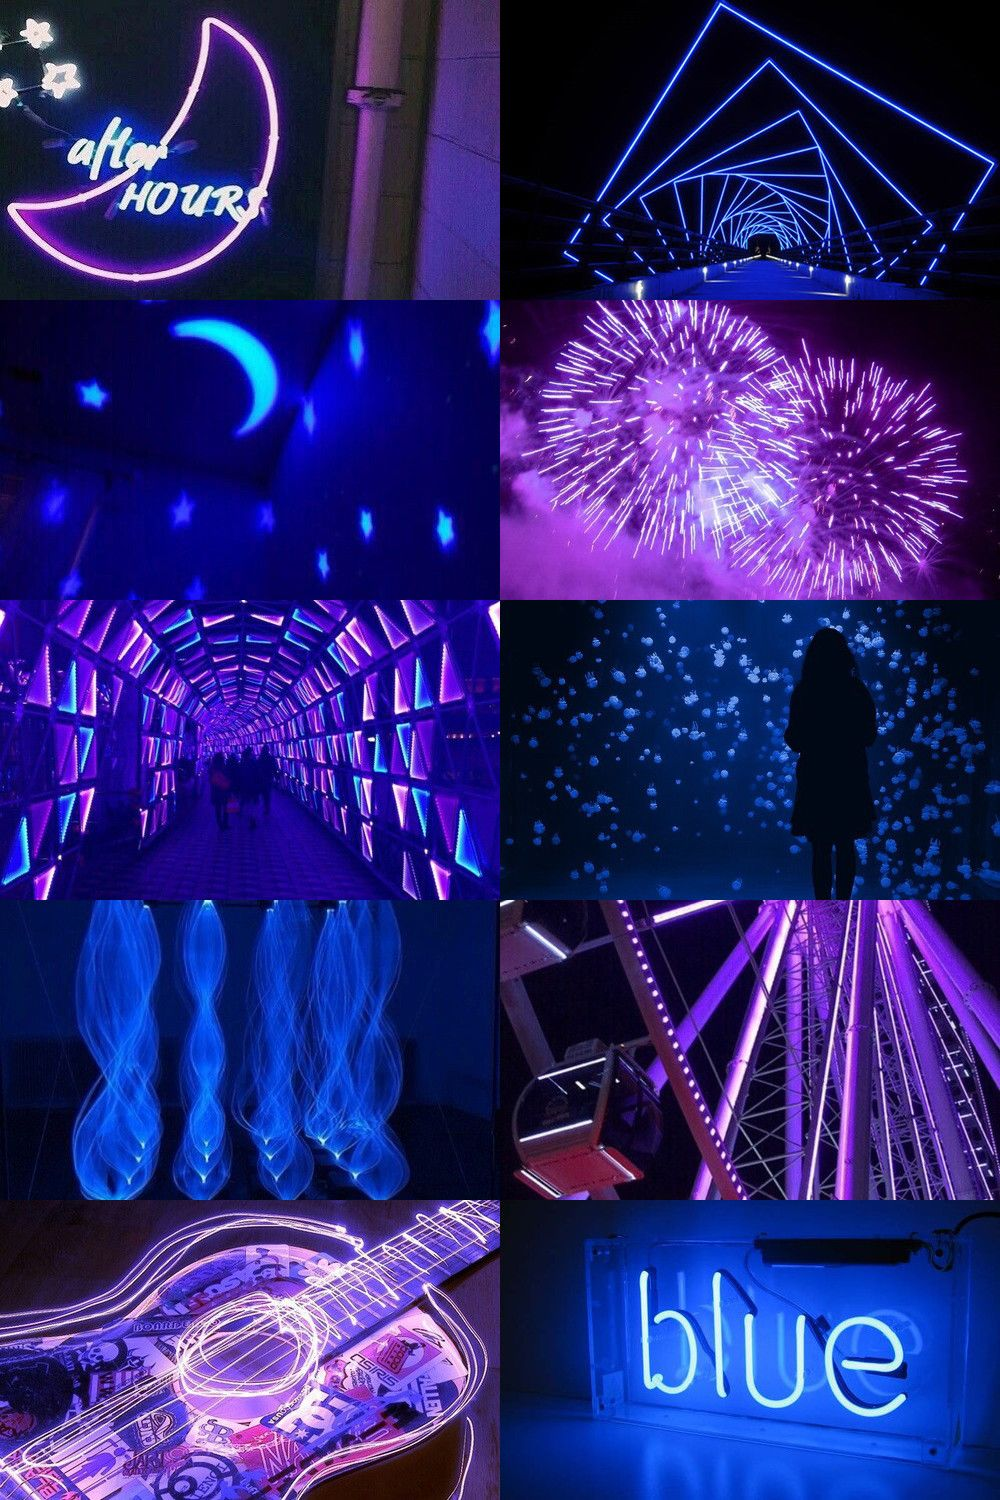 Wallpaper Aesthetic Blue And Pink